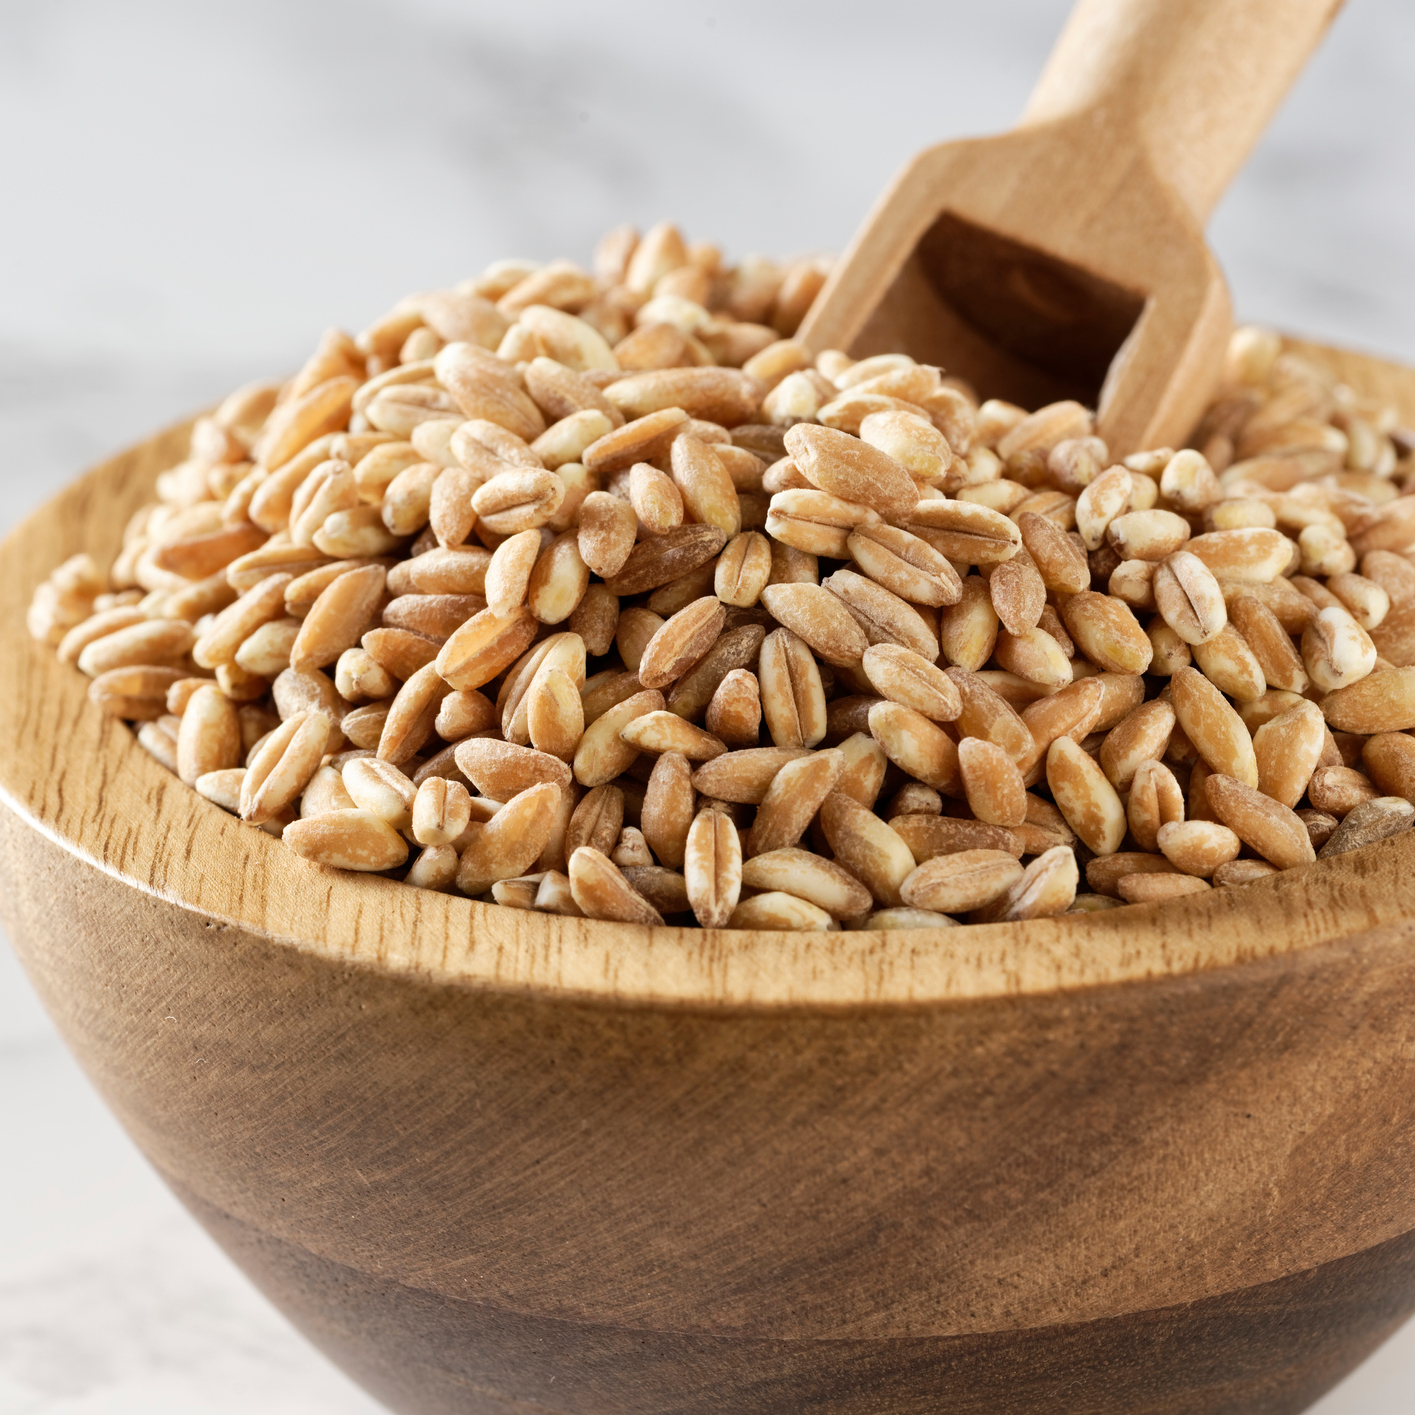 Types of grains - Farro (picture)